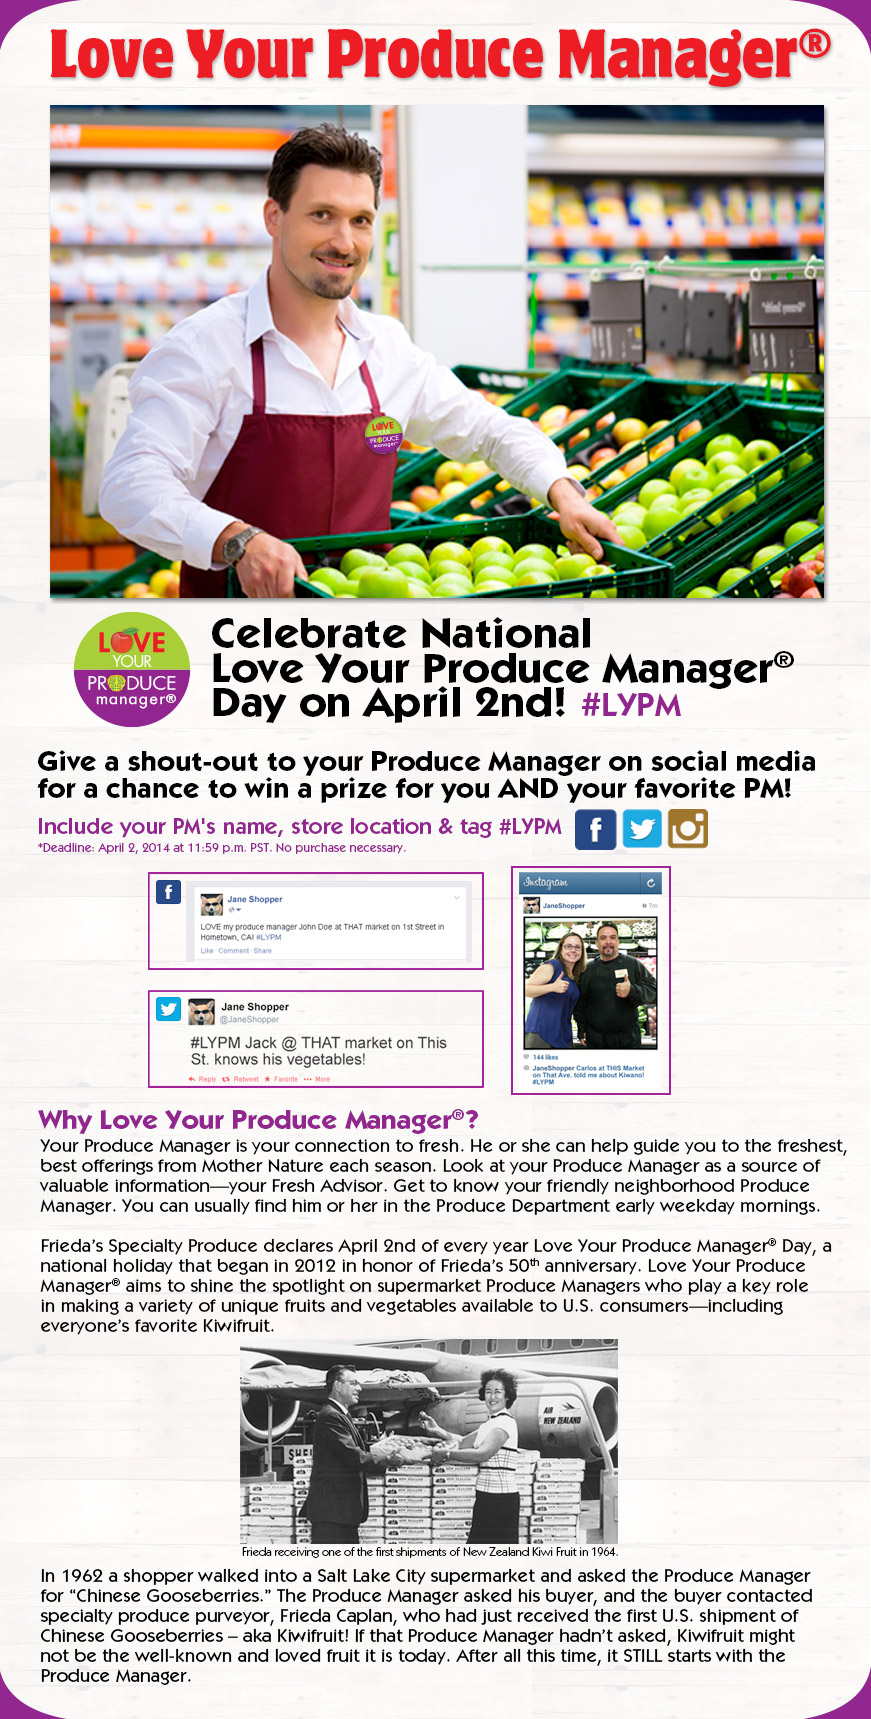 Frieda's Specialty Produce - Love Your Produce Manager Day